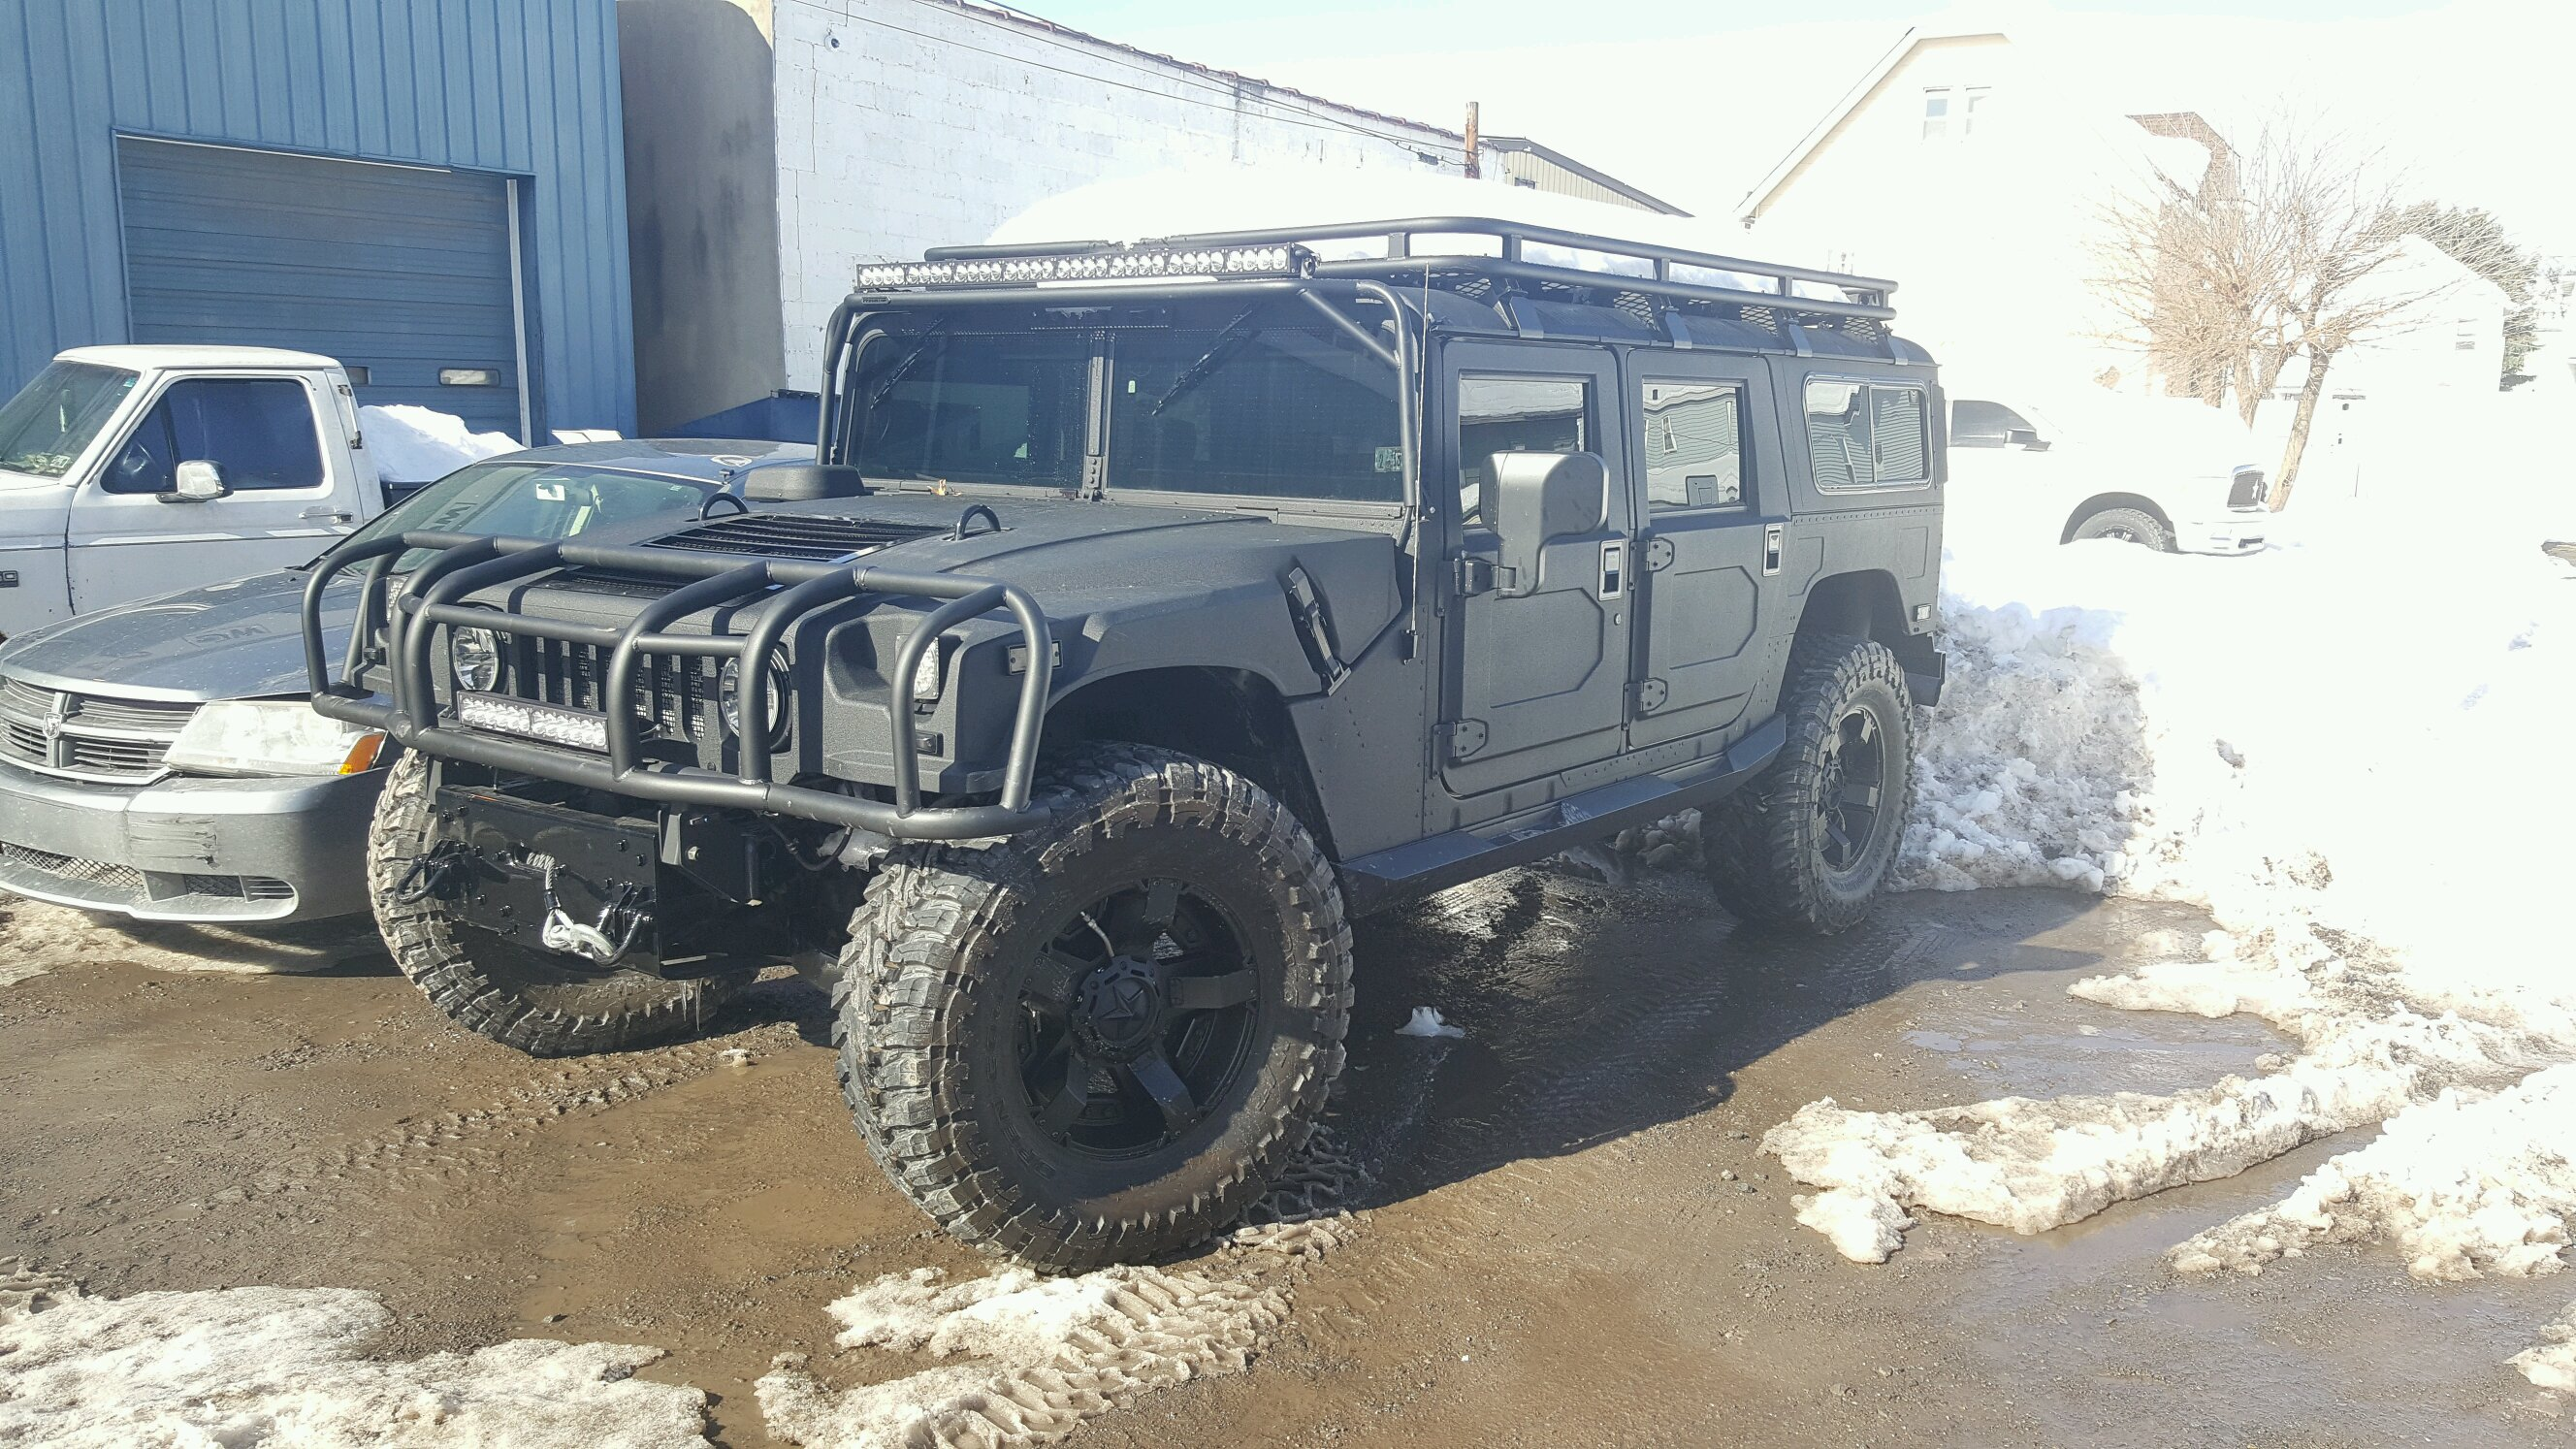 Saw this sick Hummer at a tire shop